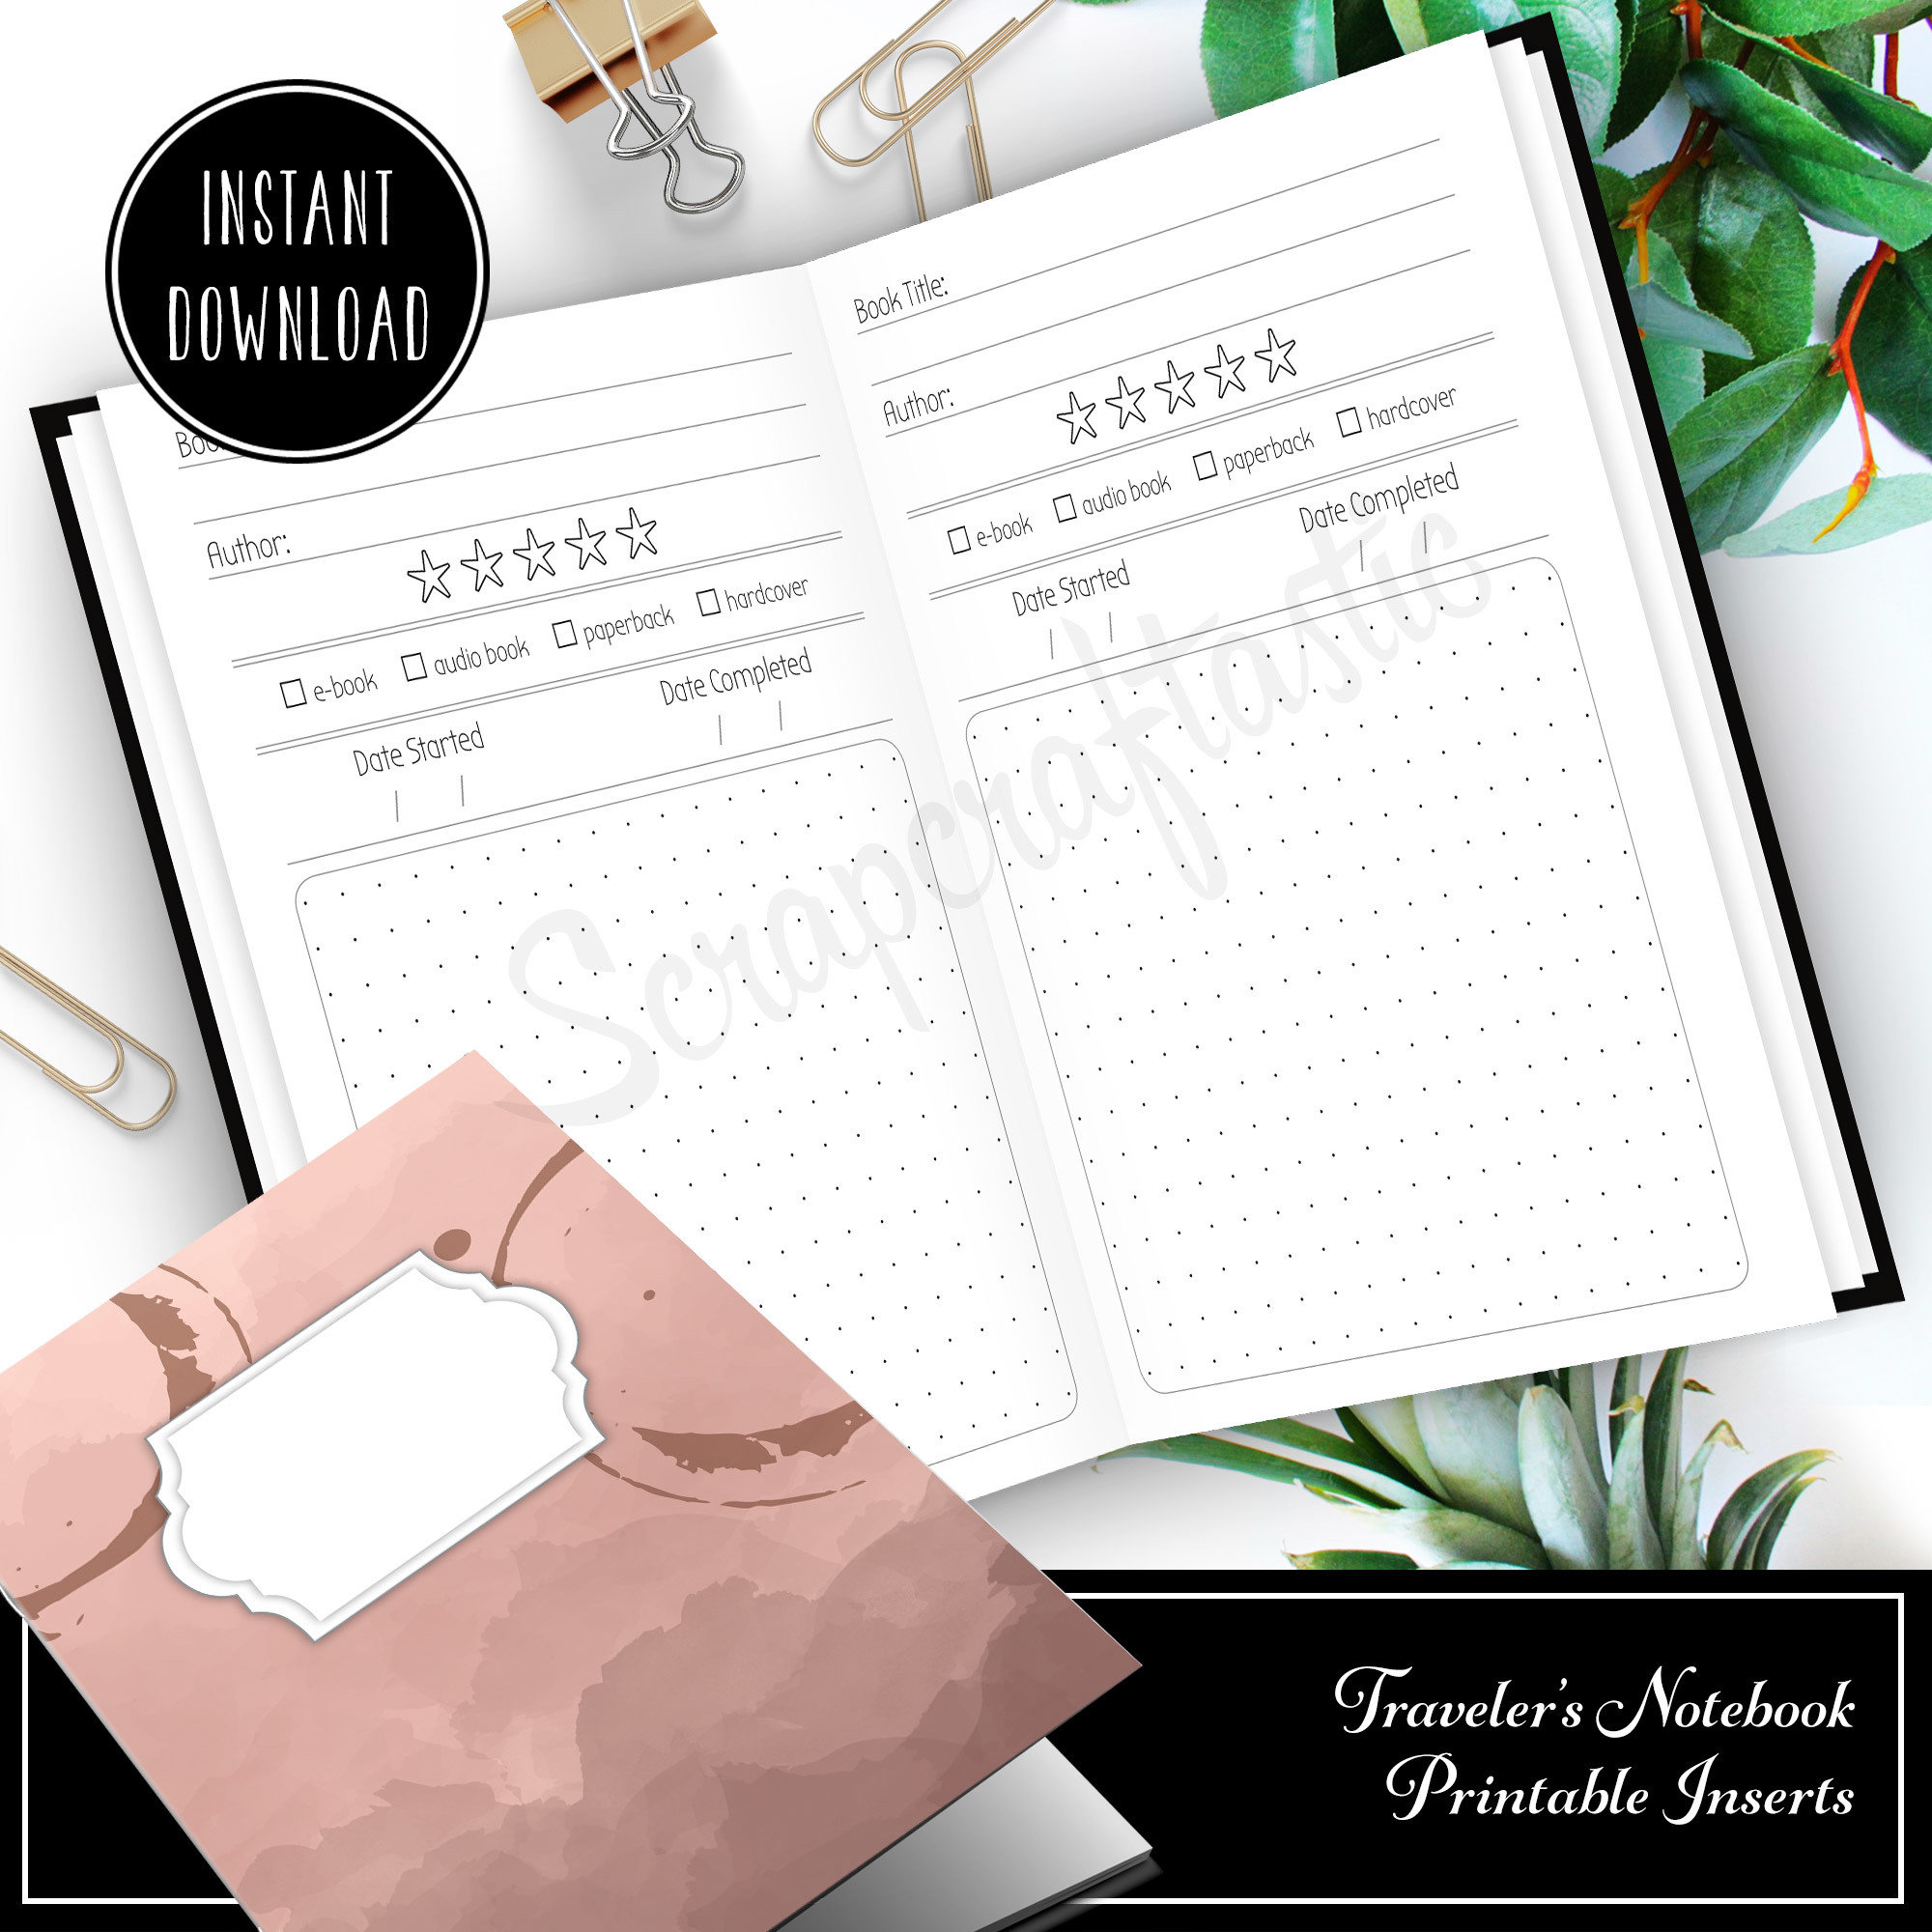 Book / Reading Log and Review Standard/Regular Traveler's Notebook Printable Insert 30012